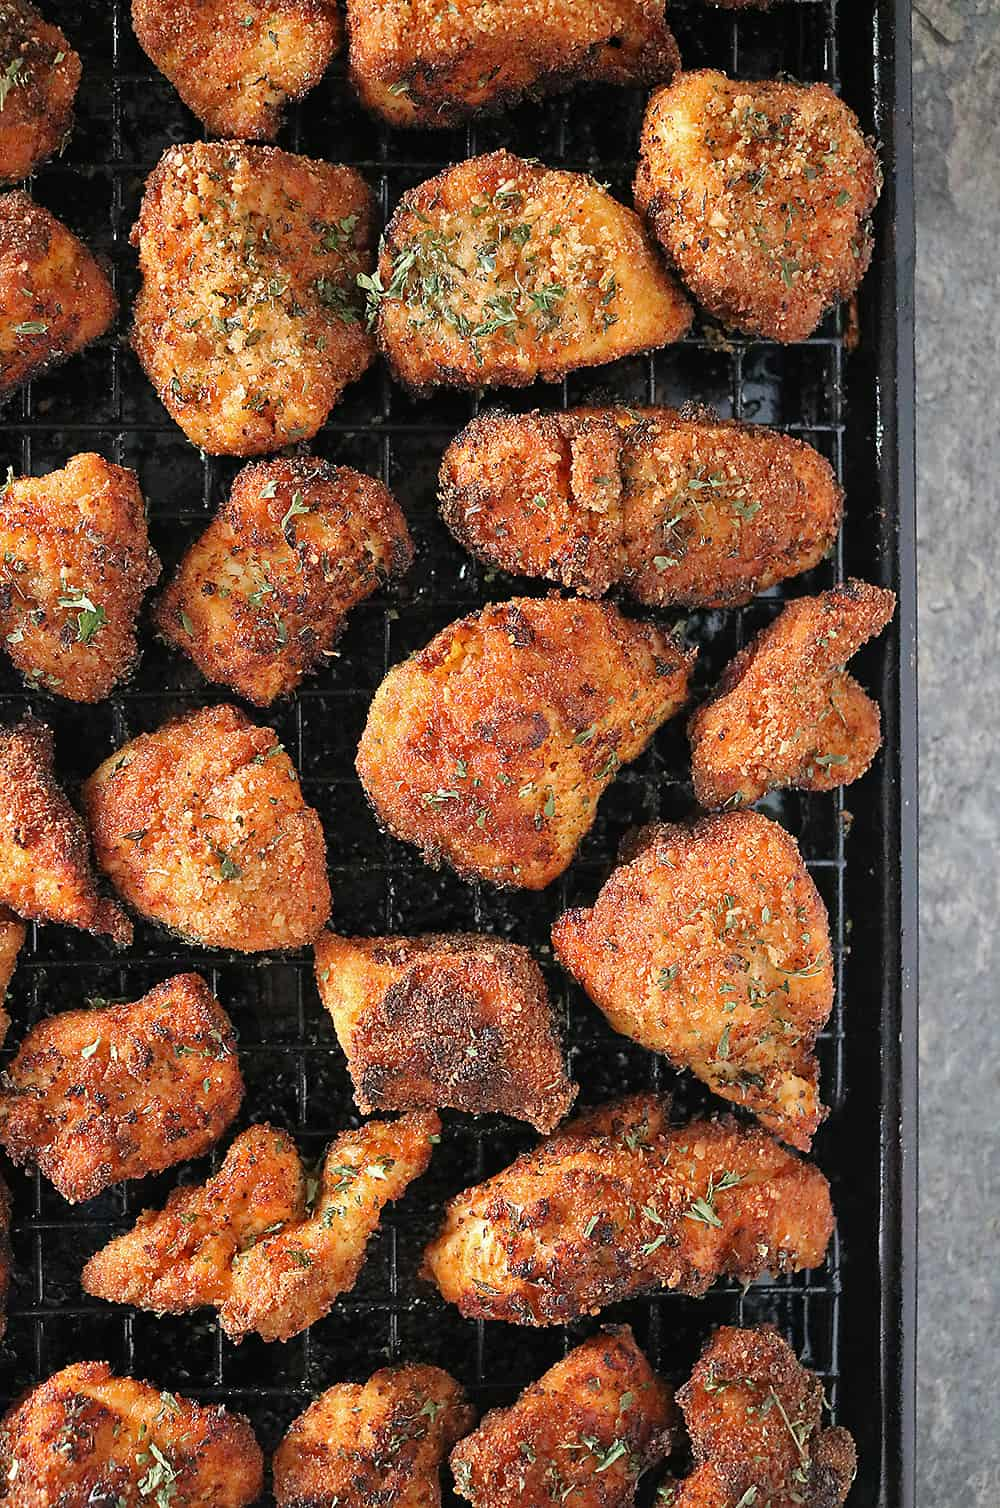 Baked Fried Chicken Photo